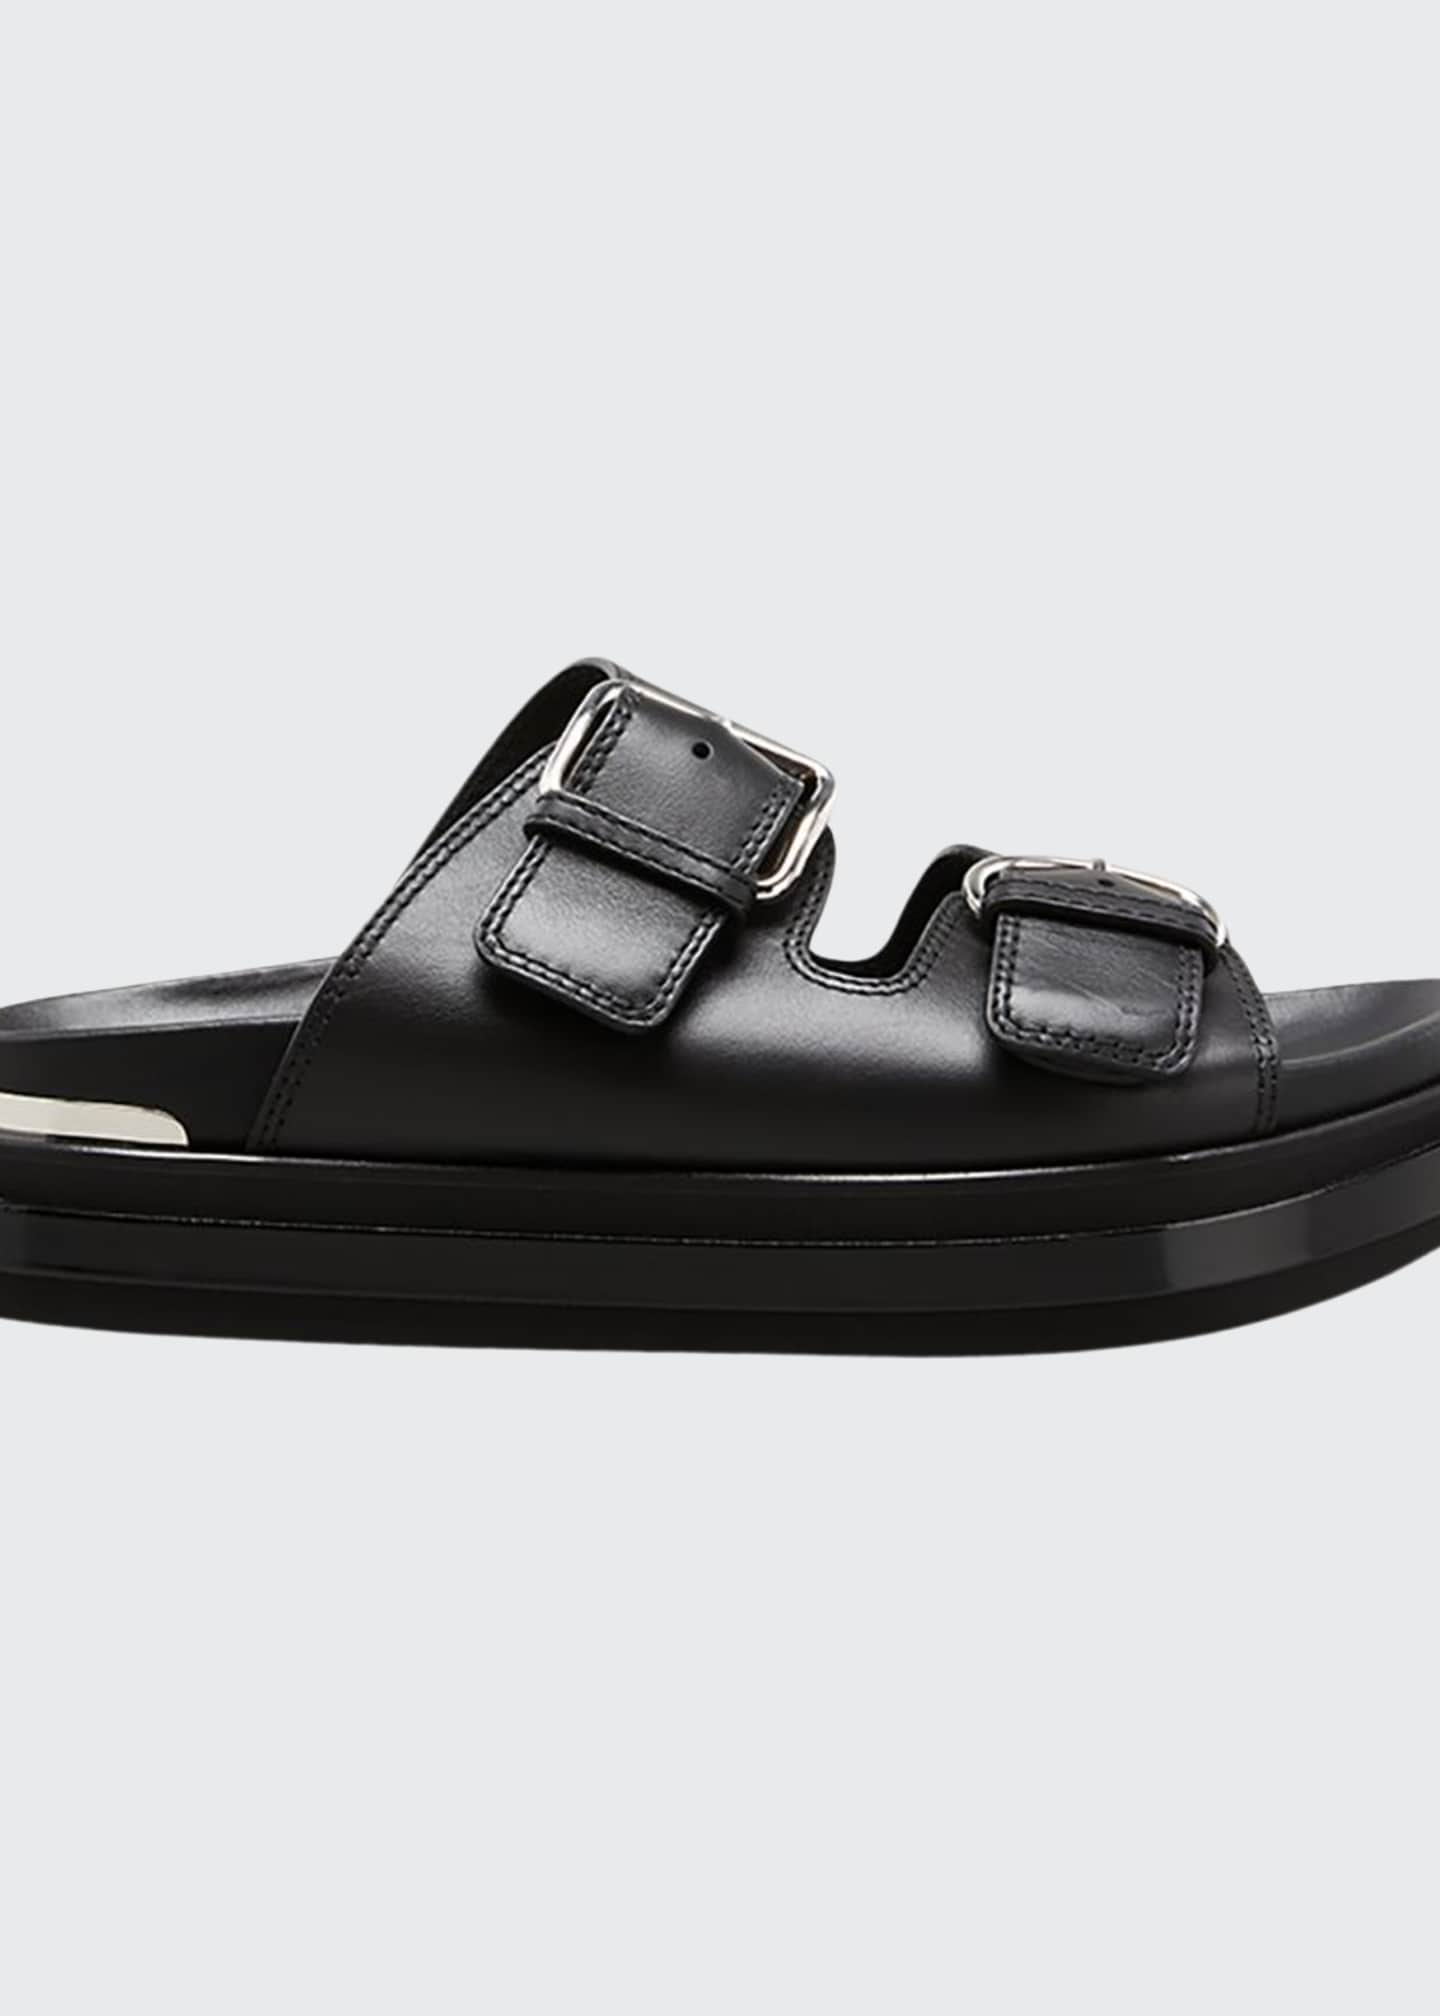 Alexander McQueen Double Buckle Sandals